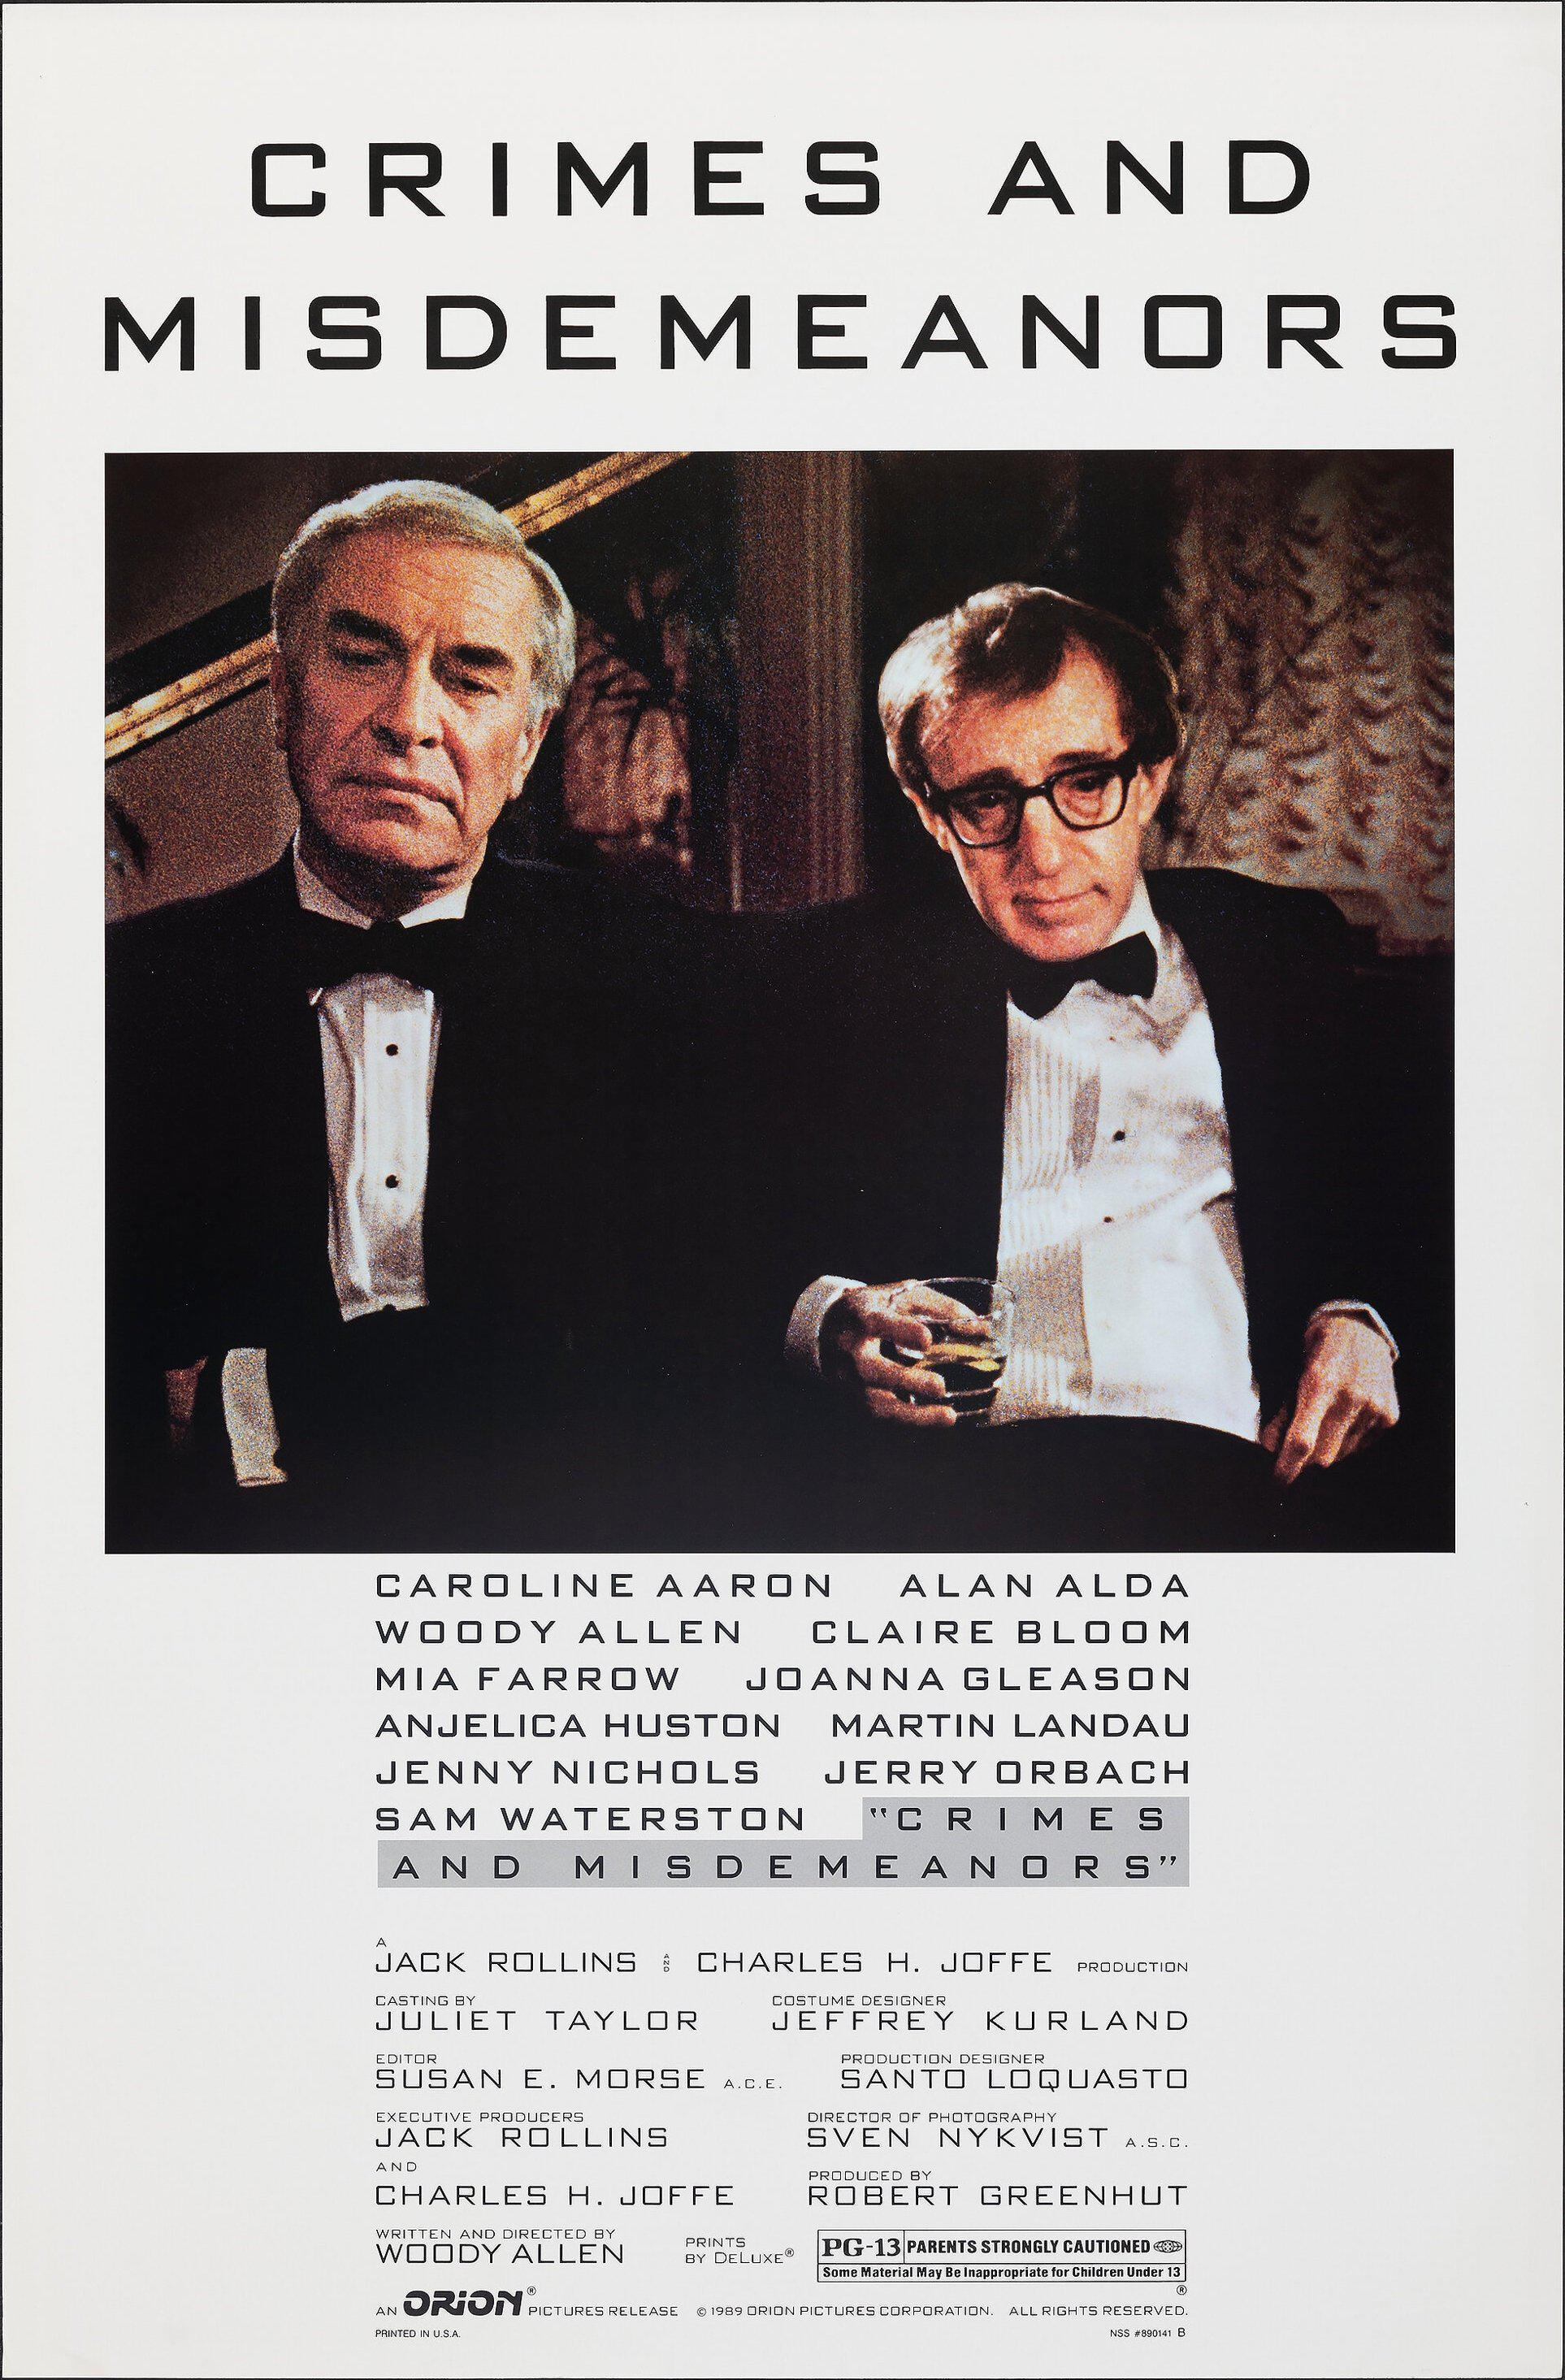 Crimes and Misdemeanors 1 Sheet (27x41) Original Vintage Movie Poster